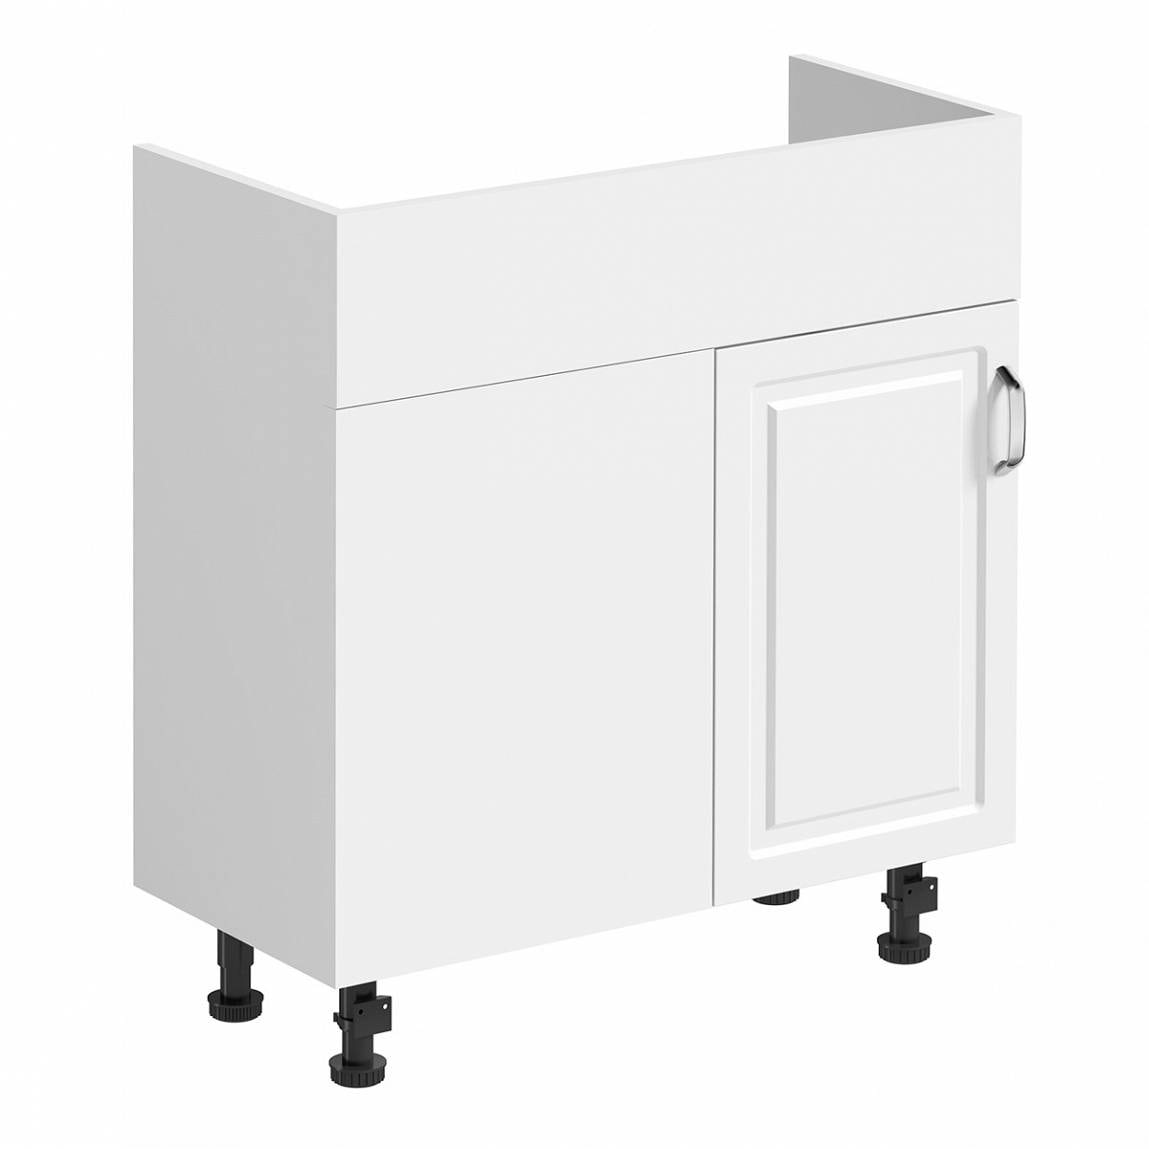 Florence white universally handed corner unit 700mm